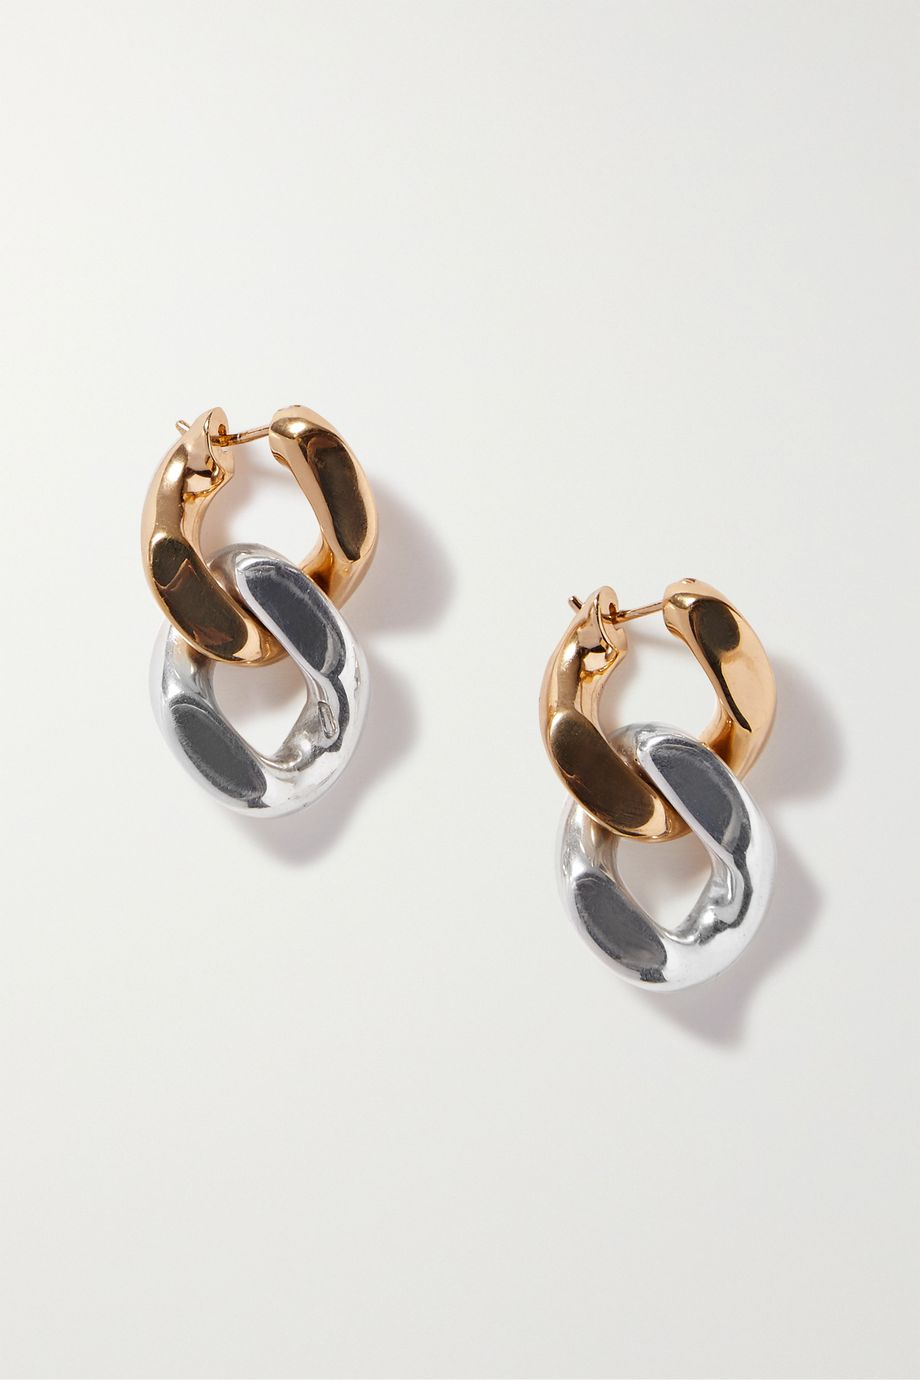 Bottega Veneta Gold and silver-tone earrings